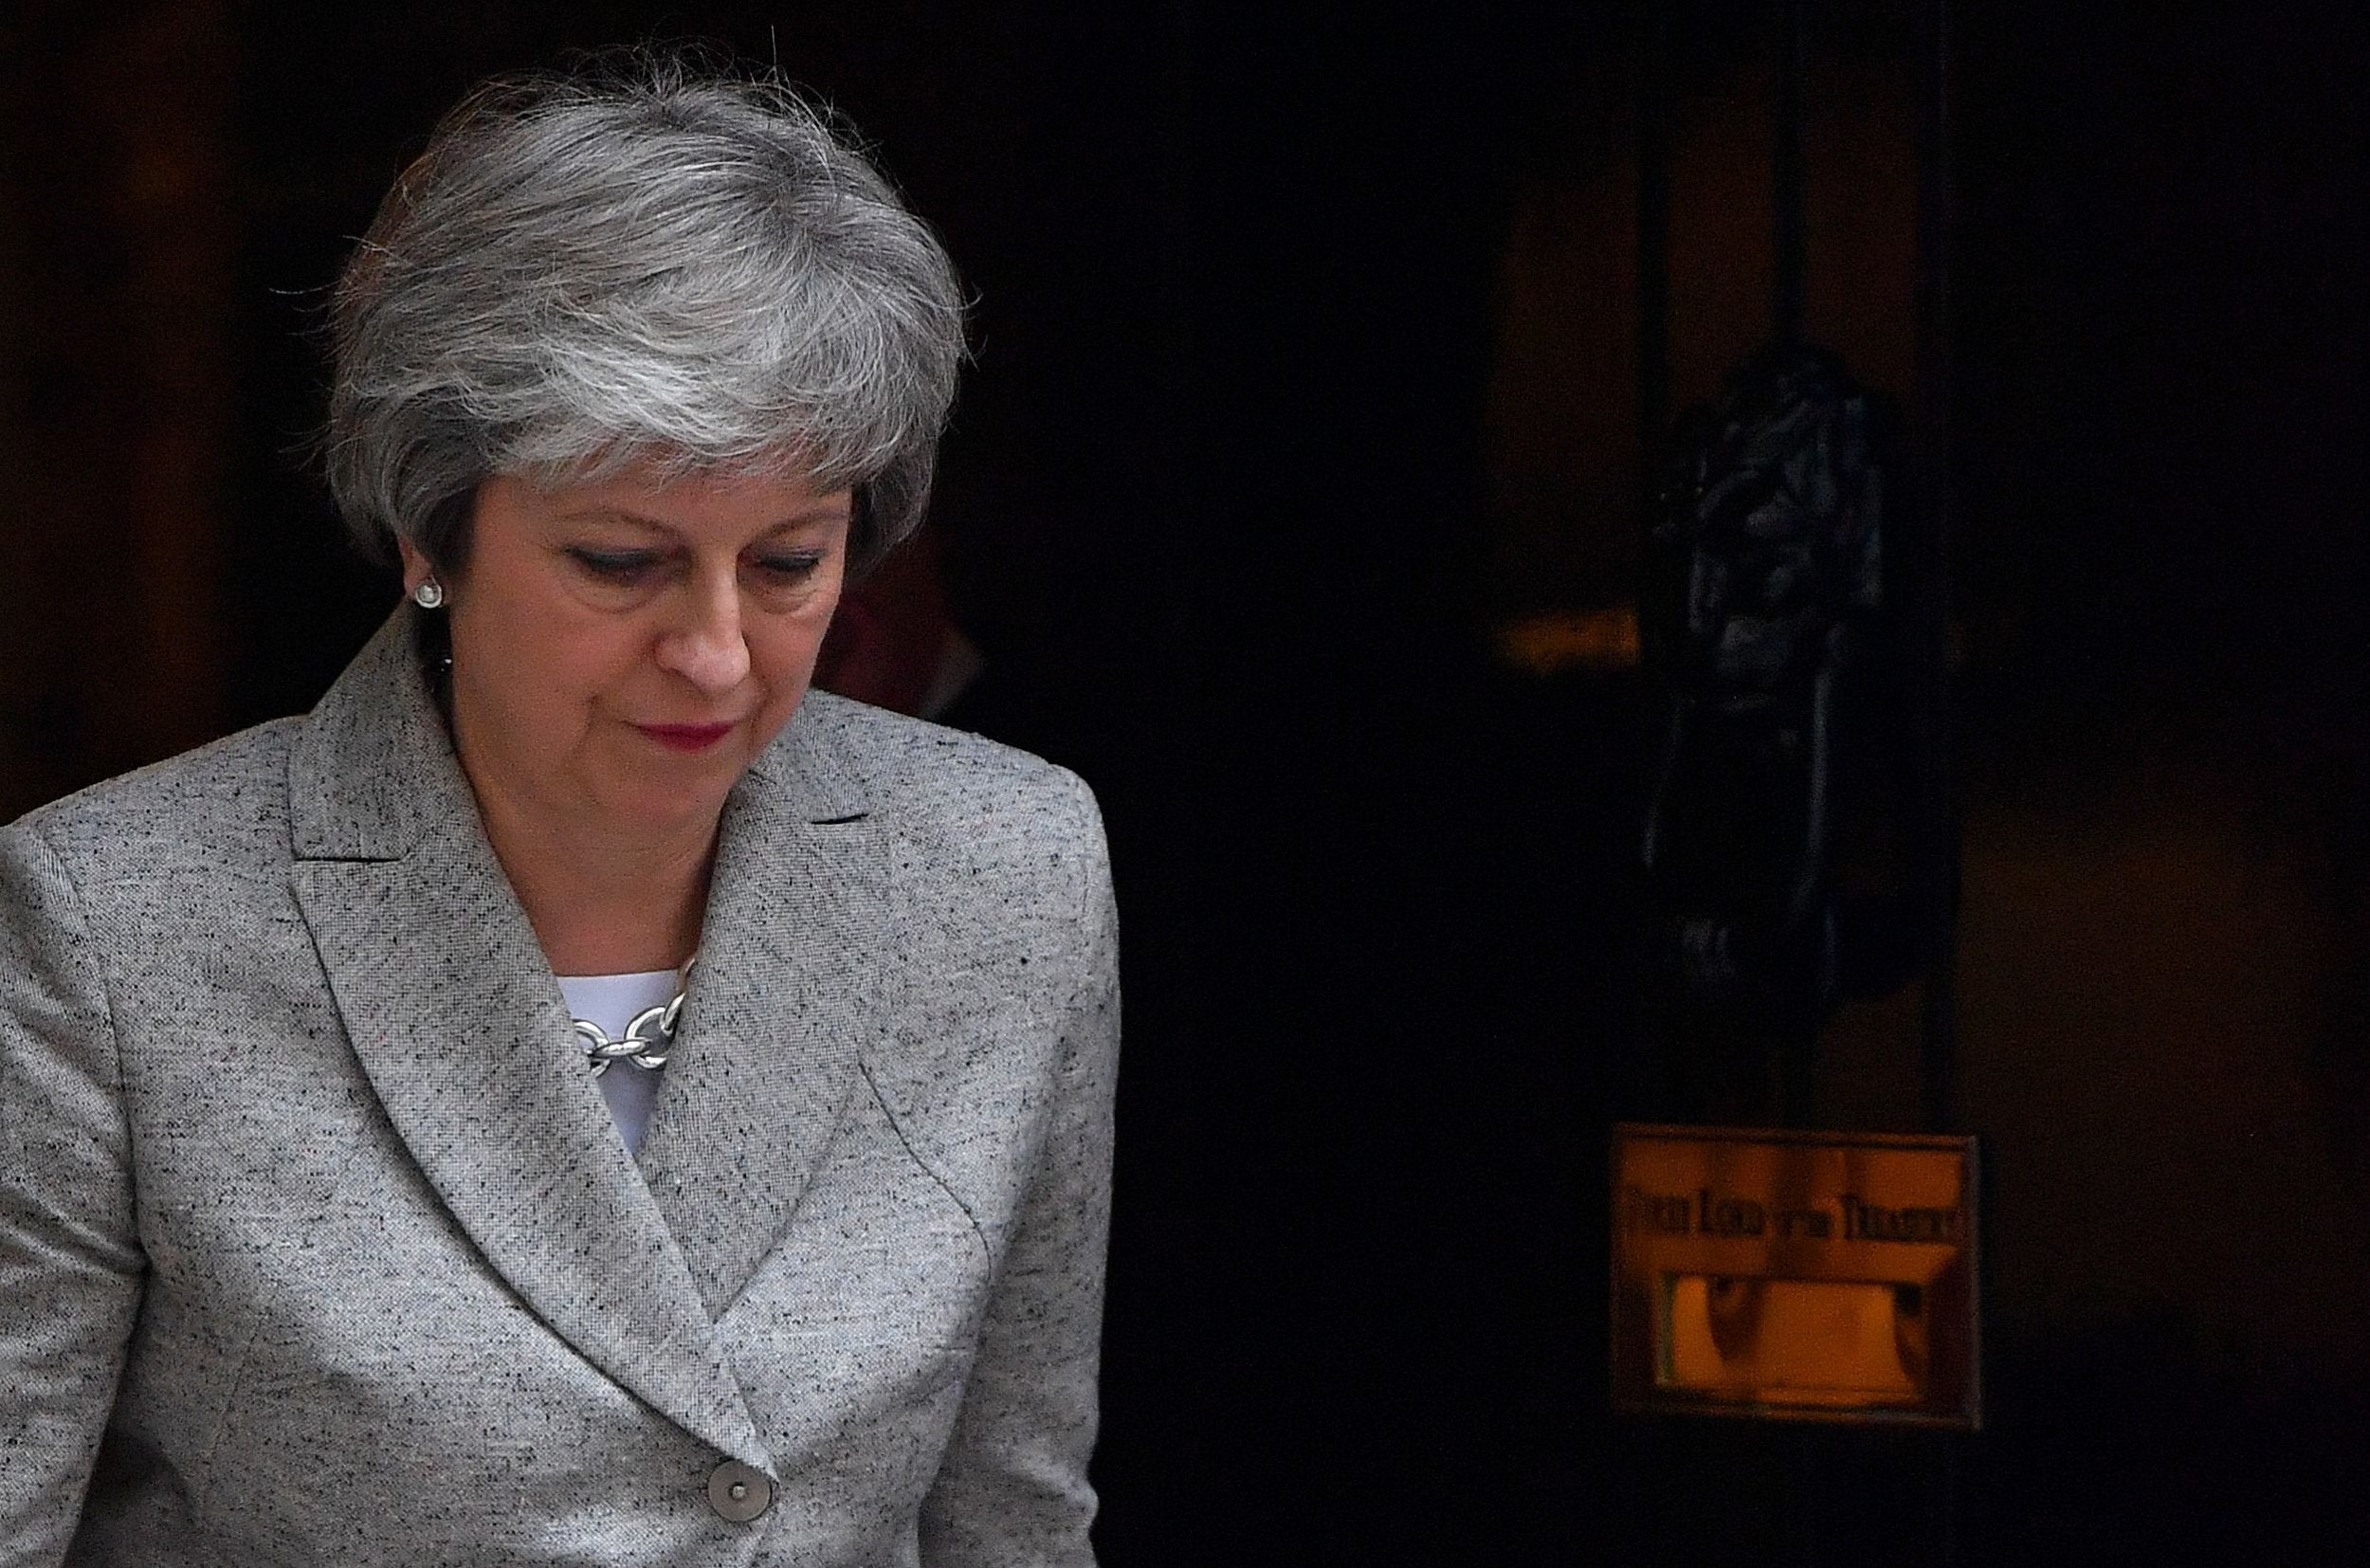 Brexit: Theresa May's deal preferred by only two parliamentary constituencies, new poll shows - The Independent